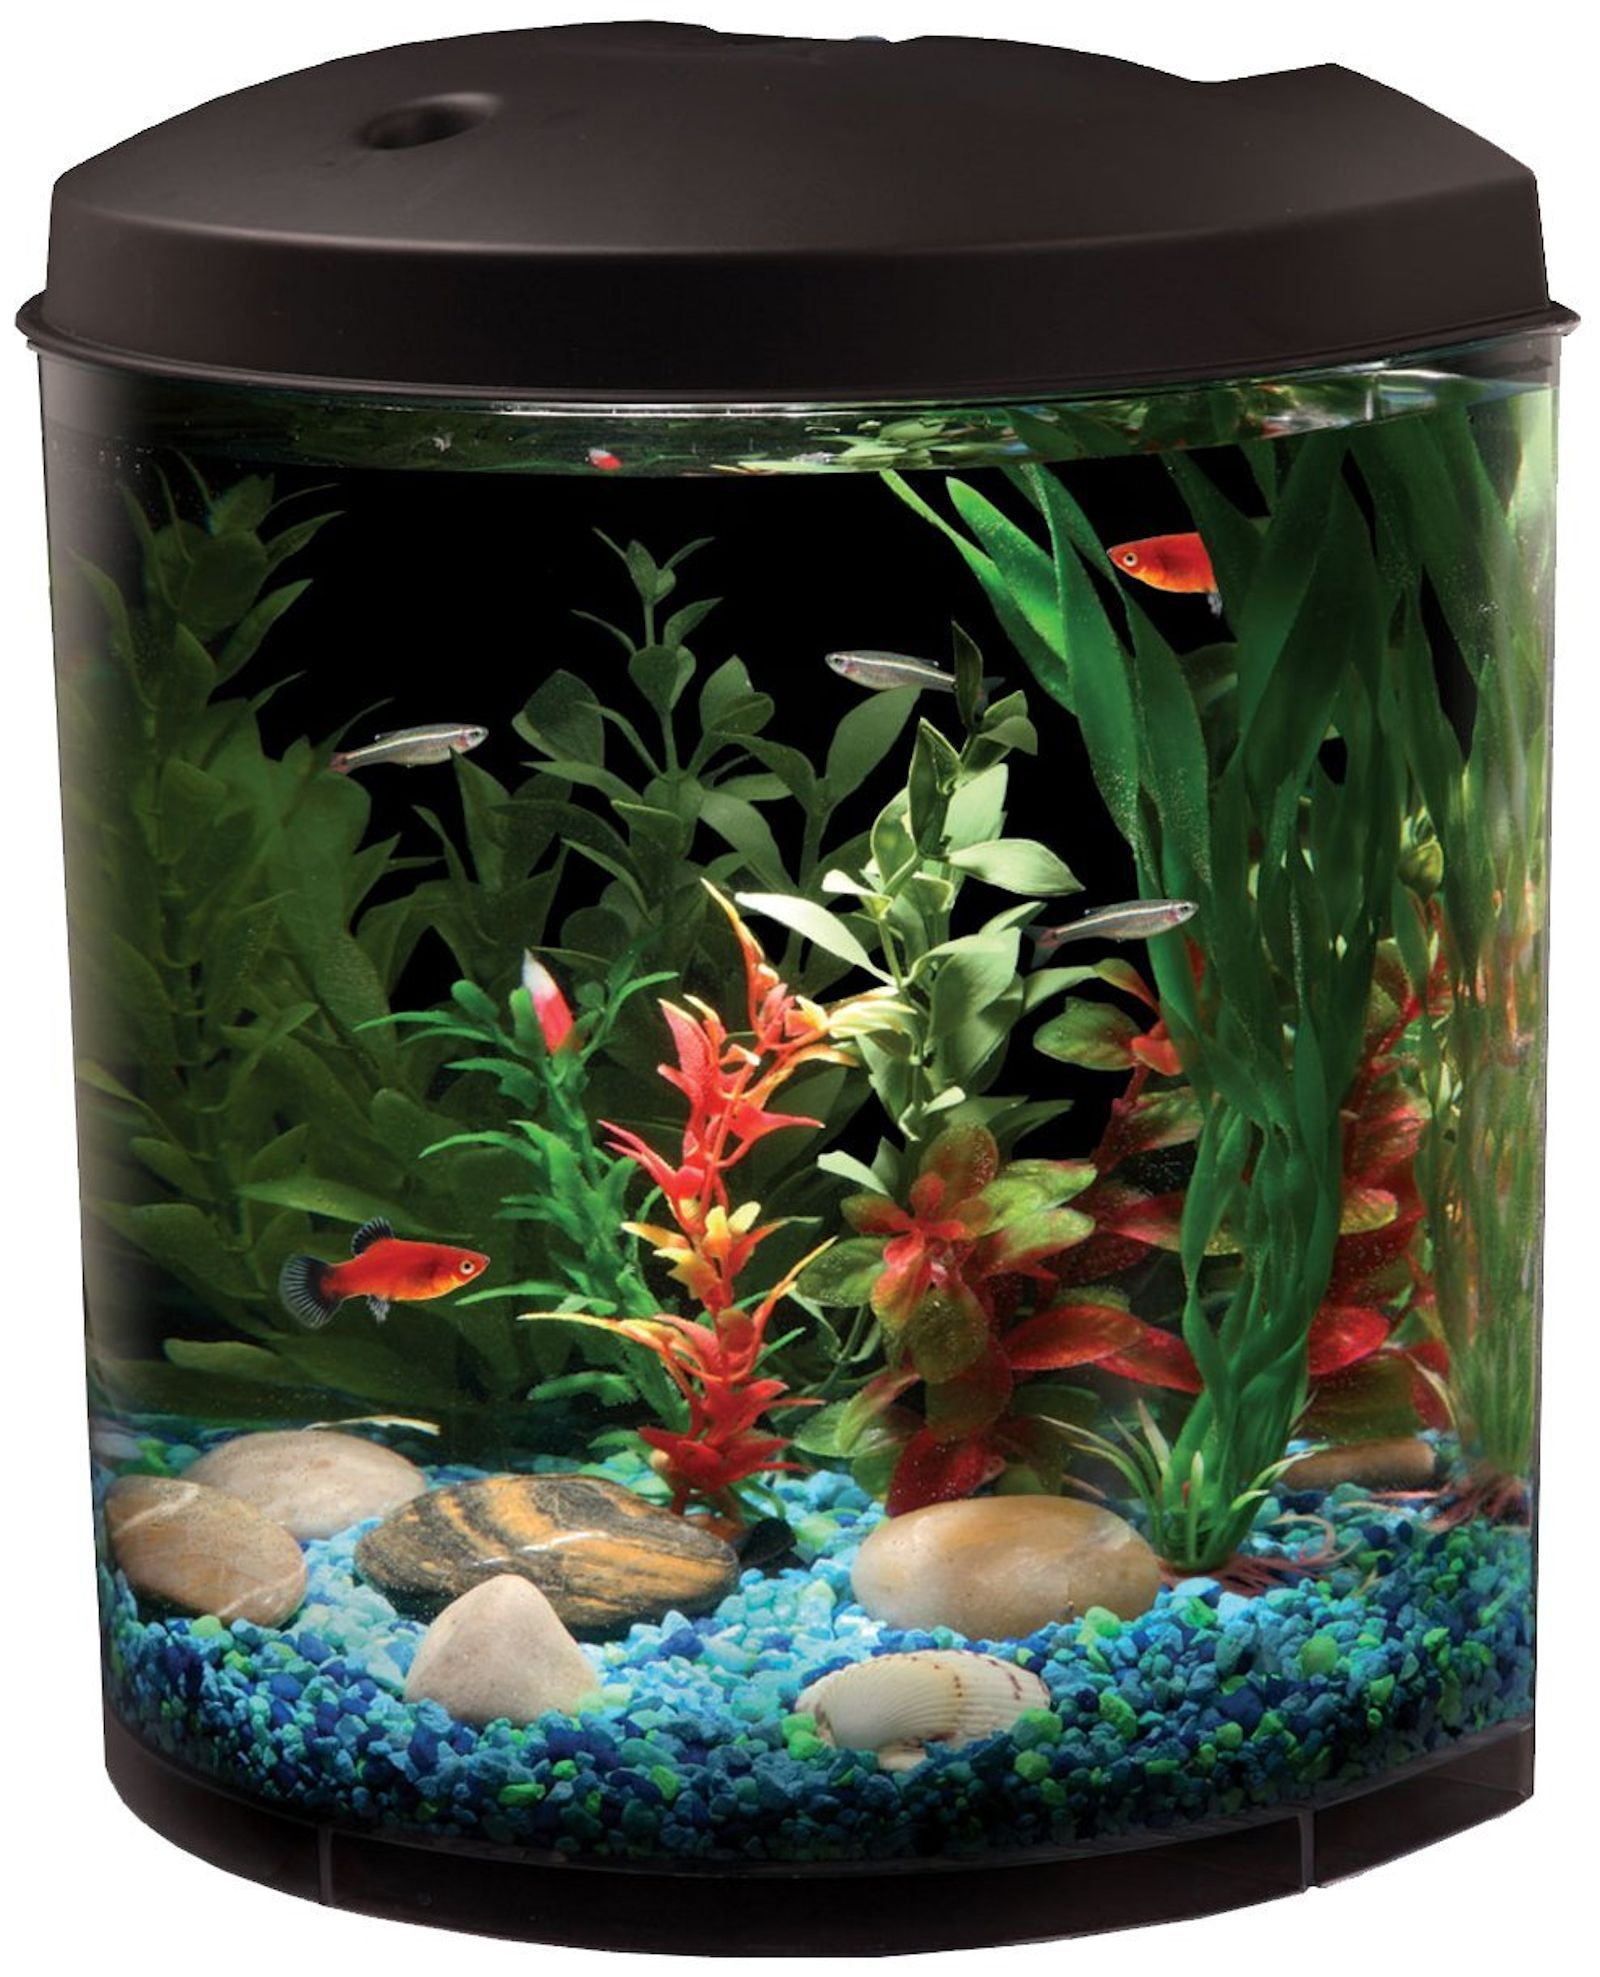 Freshwater aquarium fish information - Before You Buy An Aquarium Freshwater Aquariums Habitat